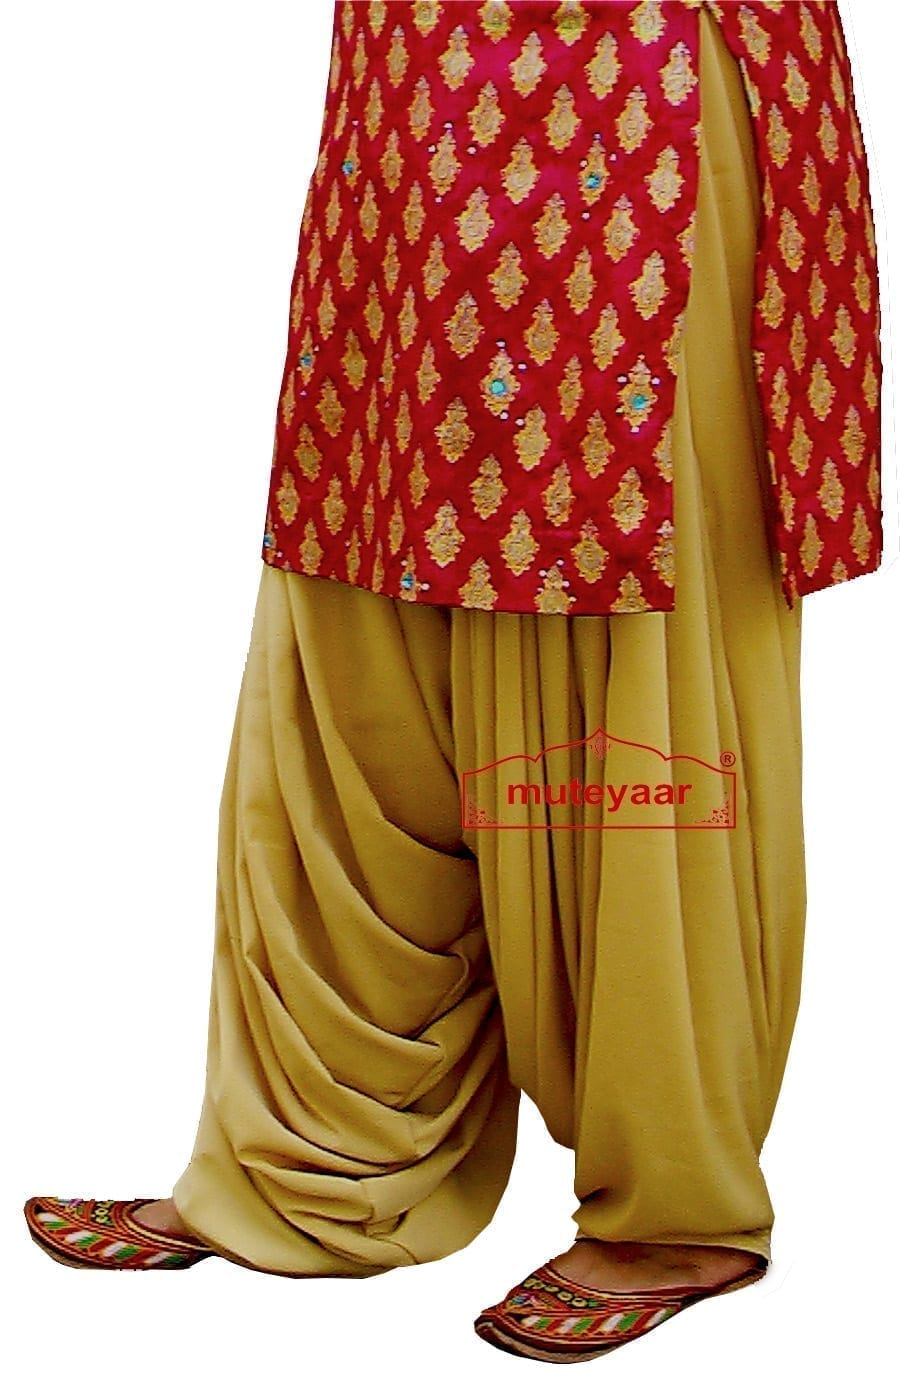 Heavy Patiala Salwar (Rani Patiala Salwar) from Patiala City !! 4